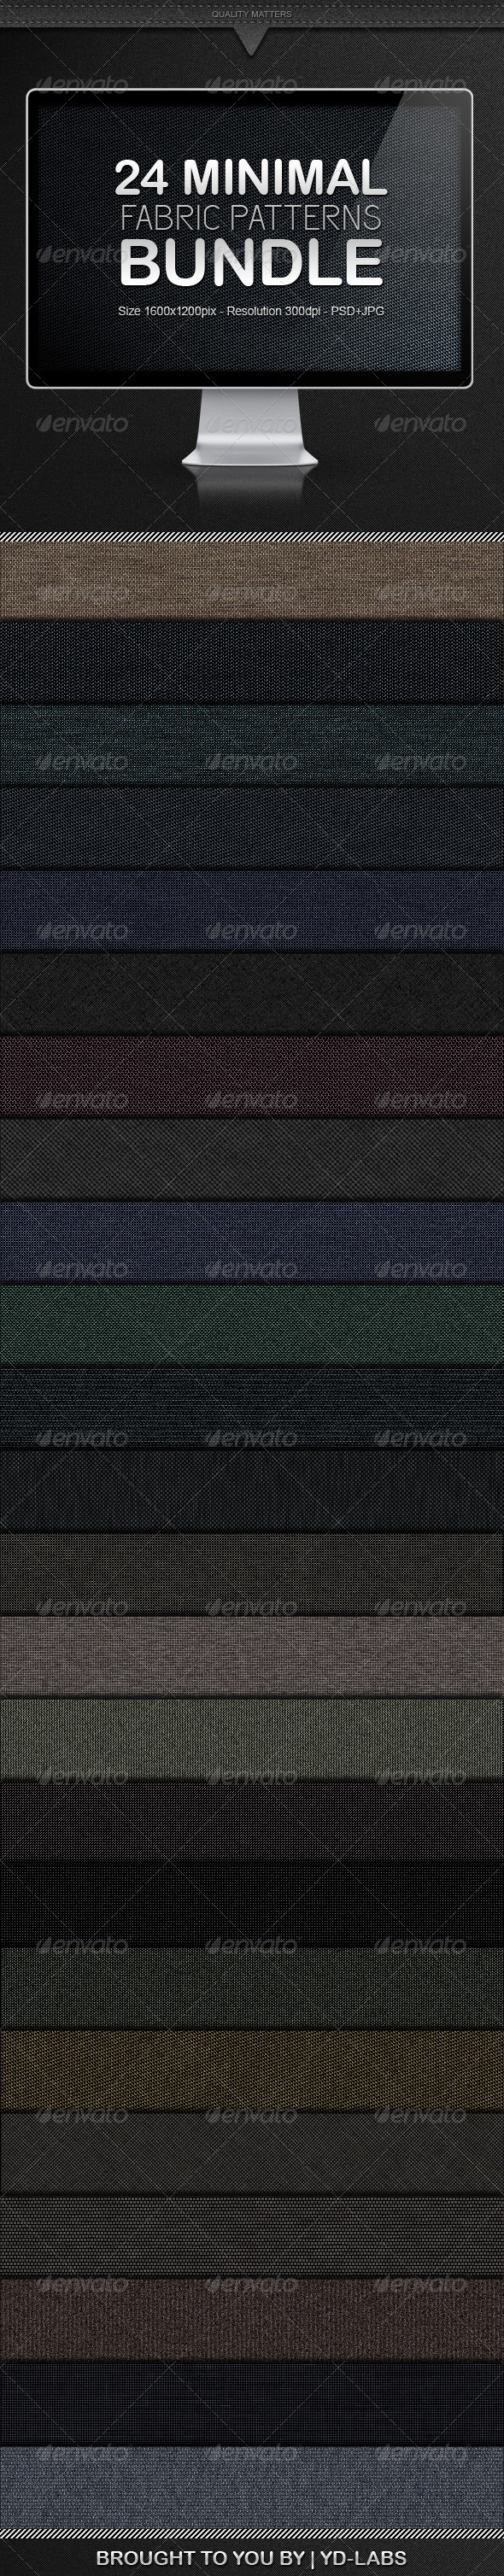 GraphicRiver 24 Minimal Fabric Patterns Bundle 1127241